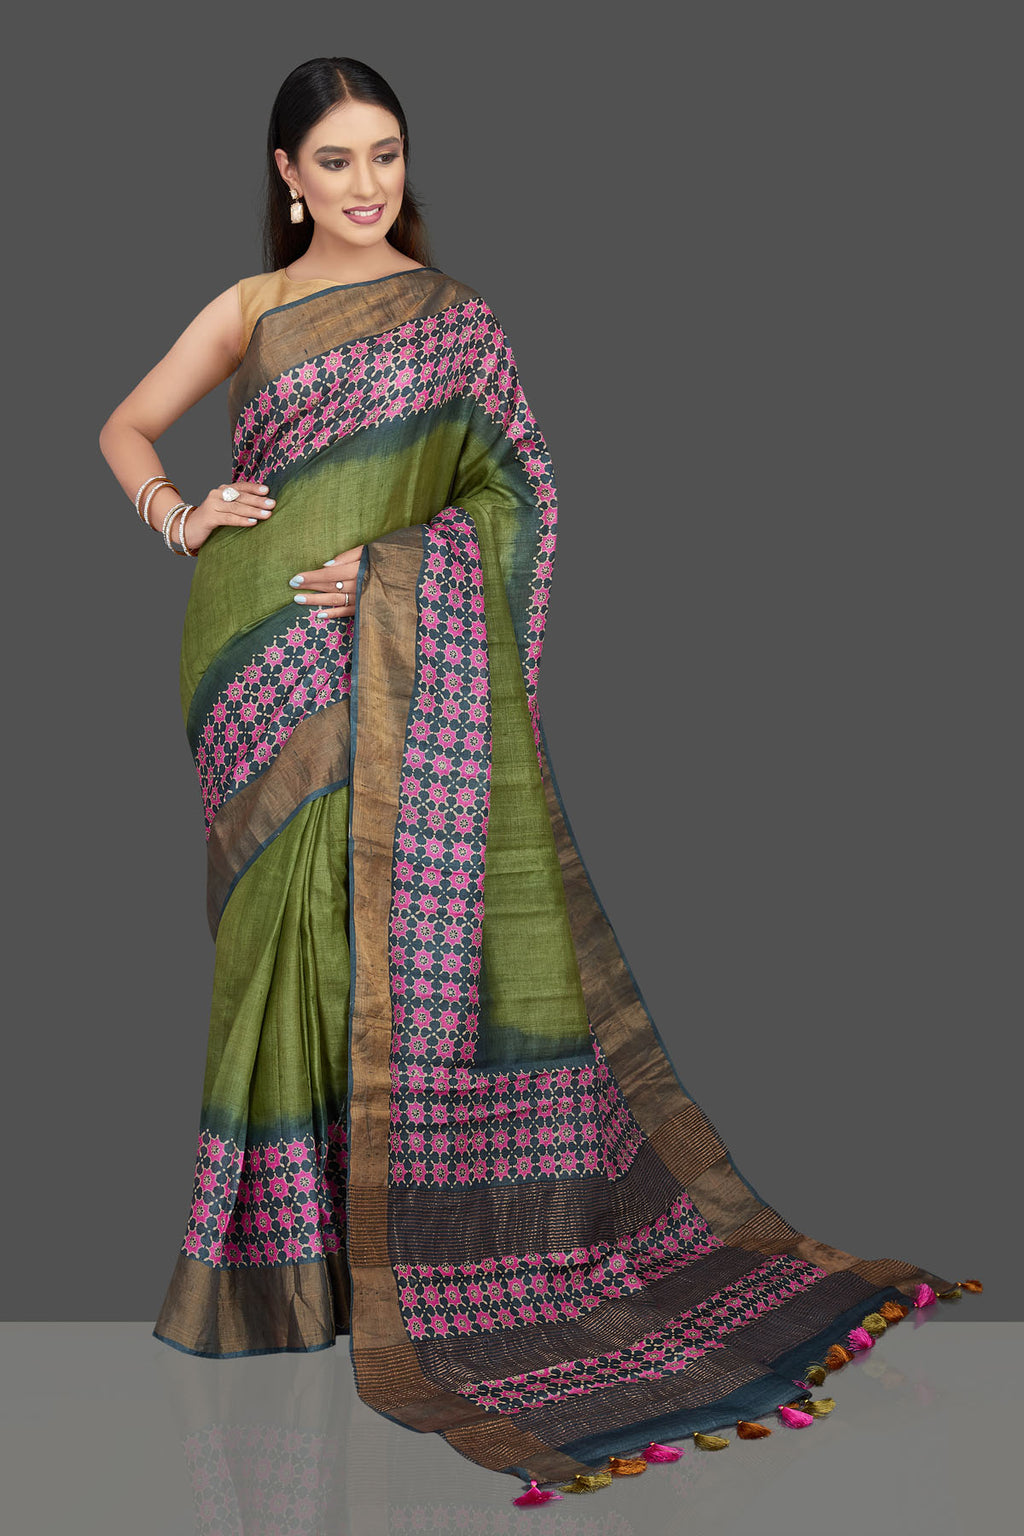 Buy gorgeous green tussar silk saree online in USA with pink floral print and zari border. Radiate elegance at weddings and special occasions with stunning linen sarees, handwoven sarees, pure silk sarees from Pure Elegance Indian fashion store in USA.-full view